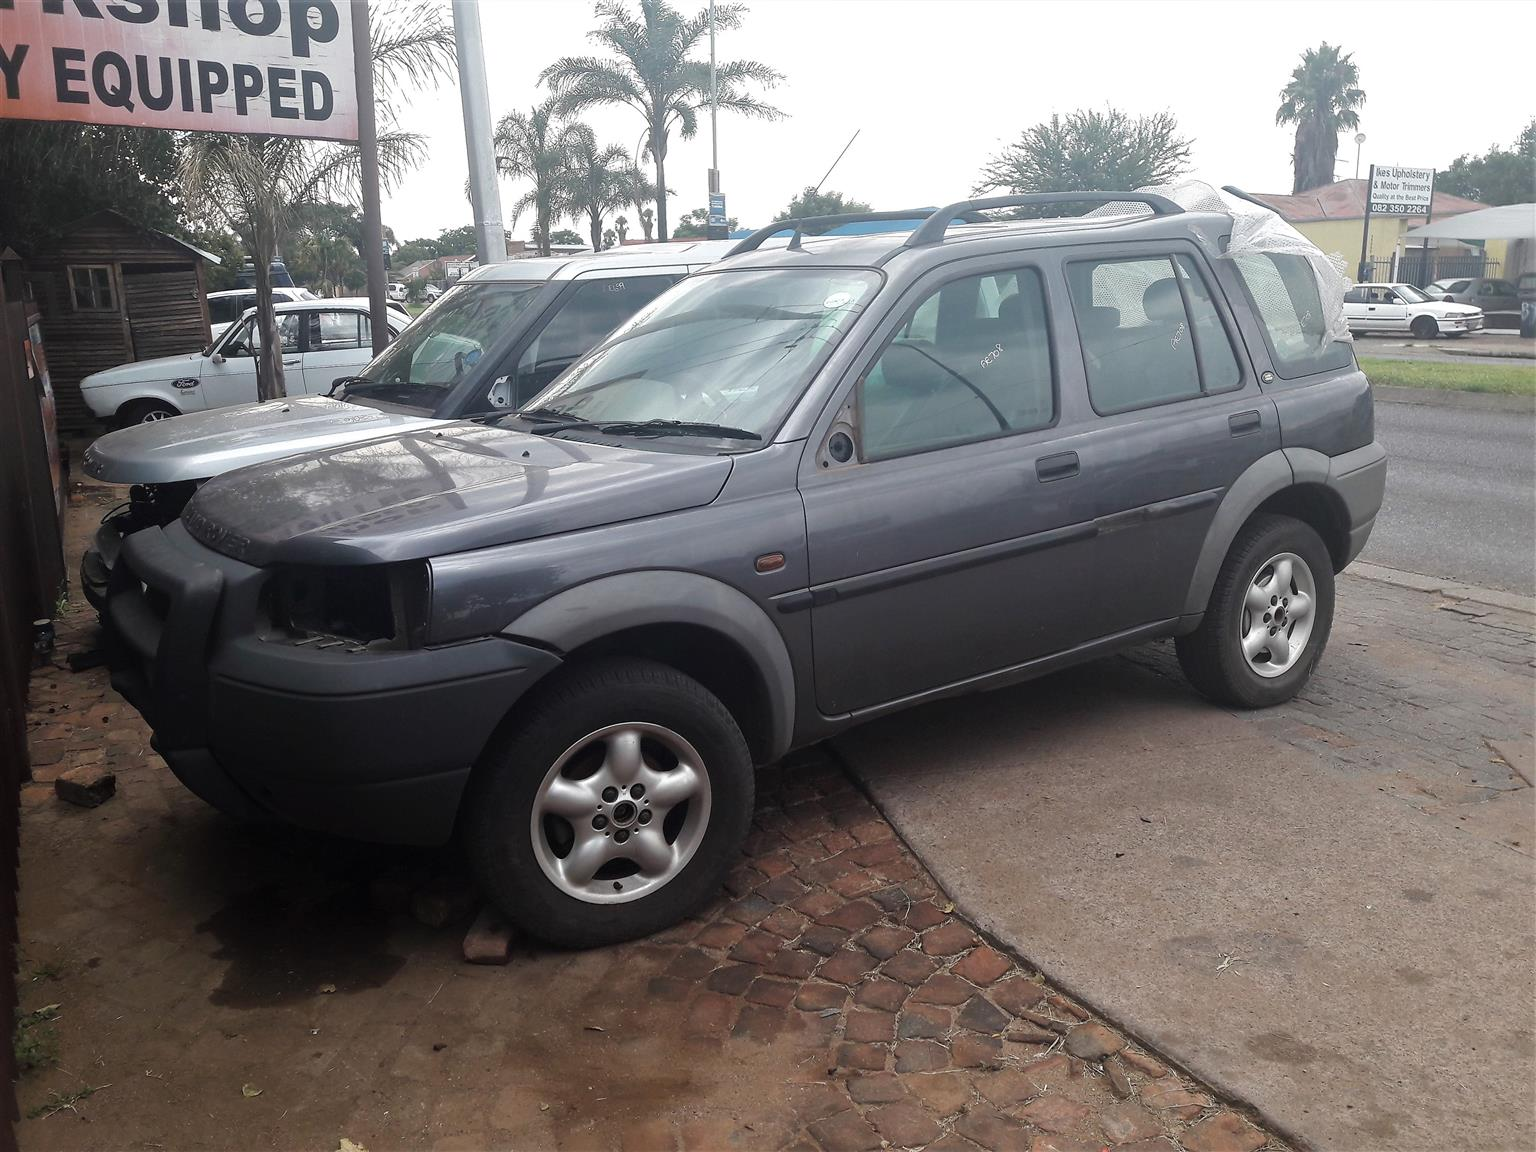 Land Rover Freelander 1  parts for sale - various